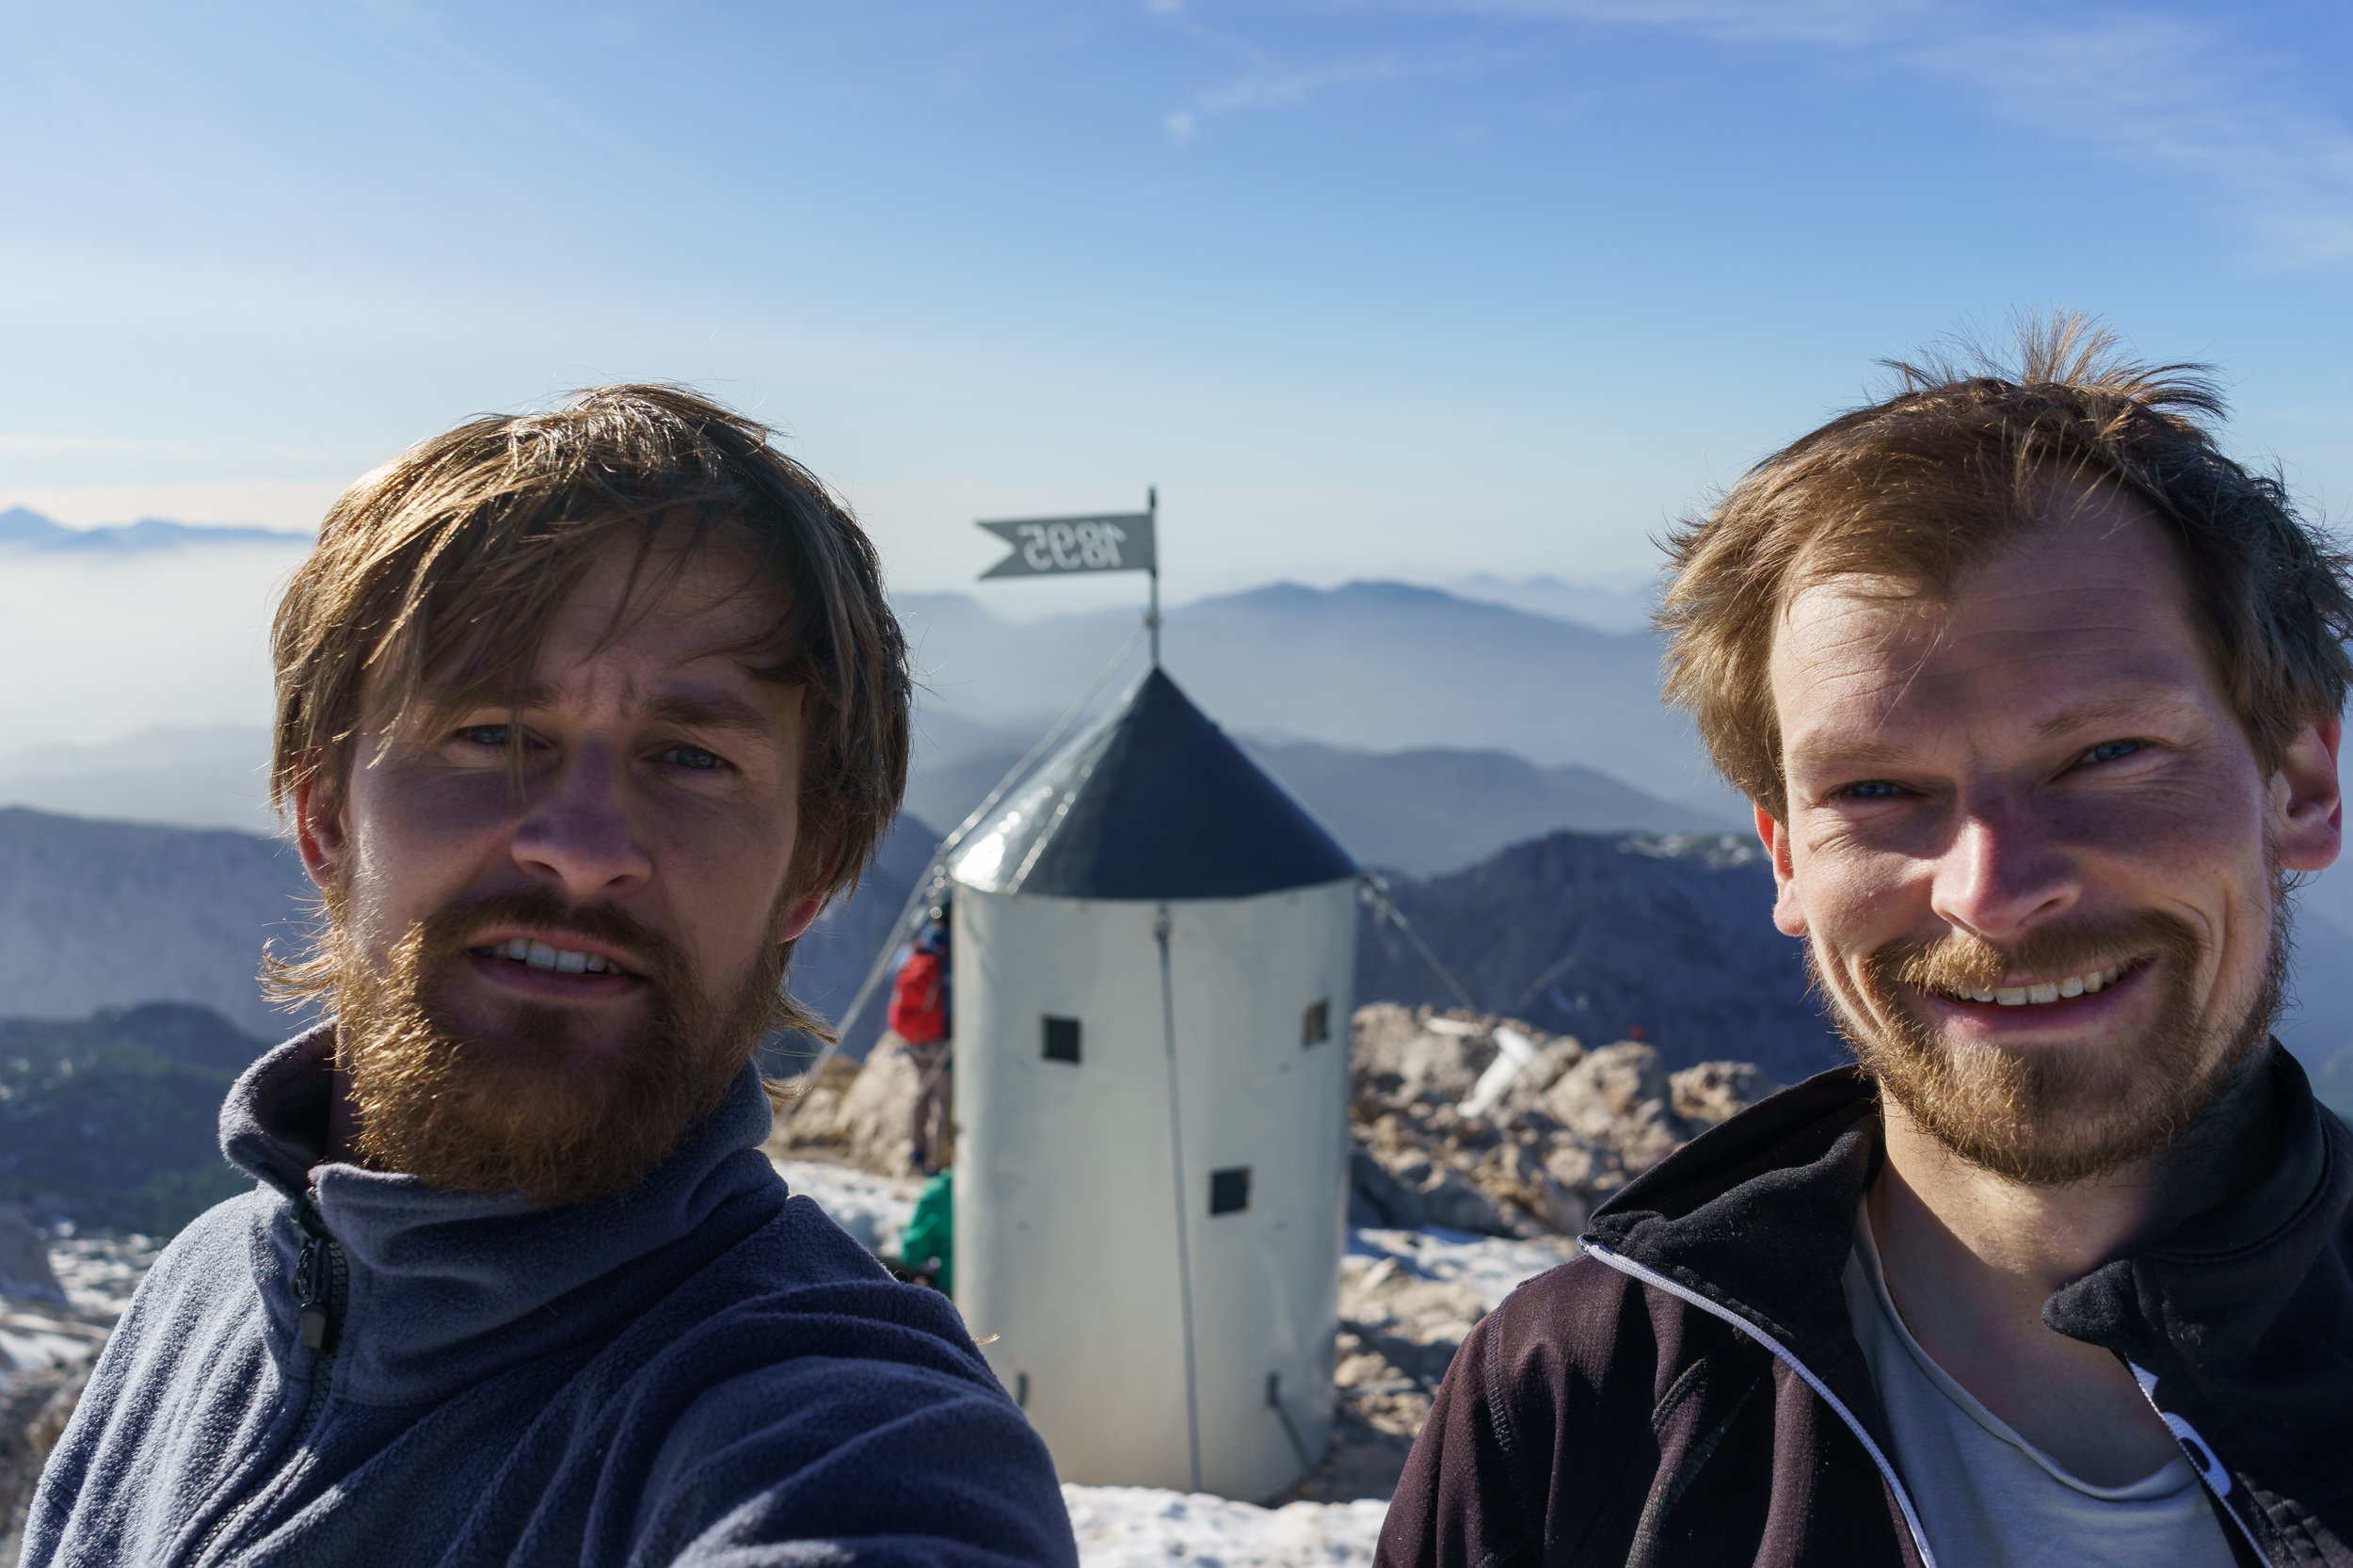 On top of the highest summit in Slovenia, Mt. Triglav (2864 m).